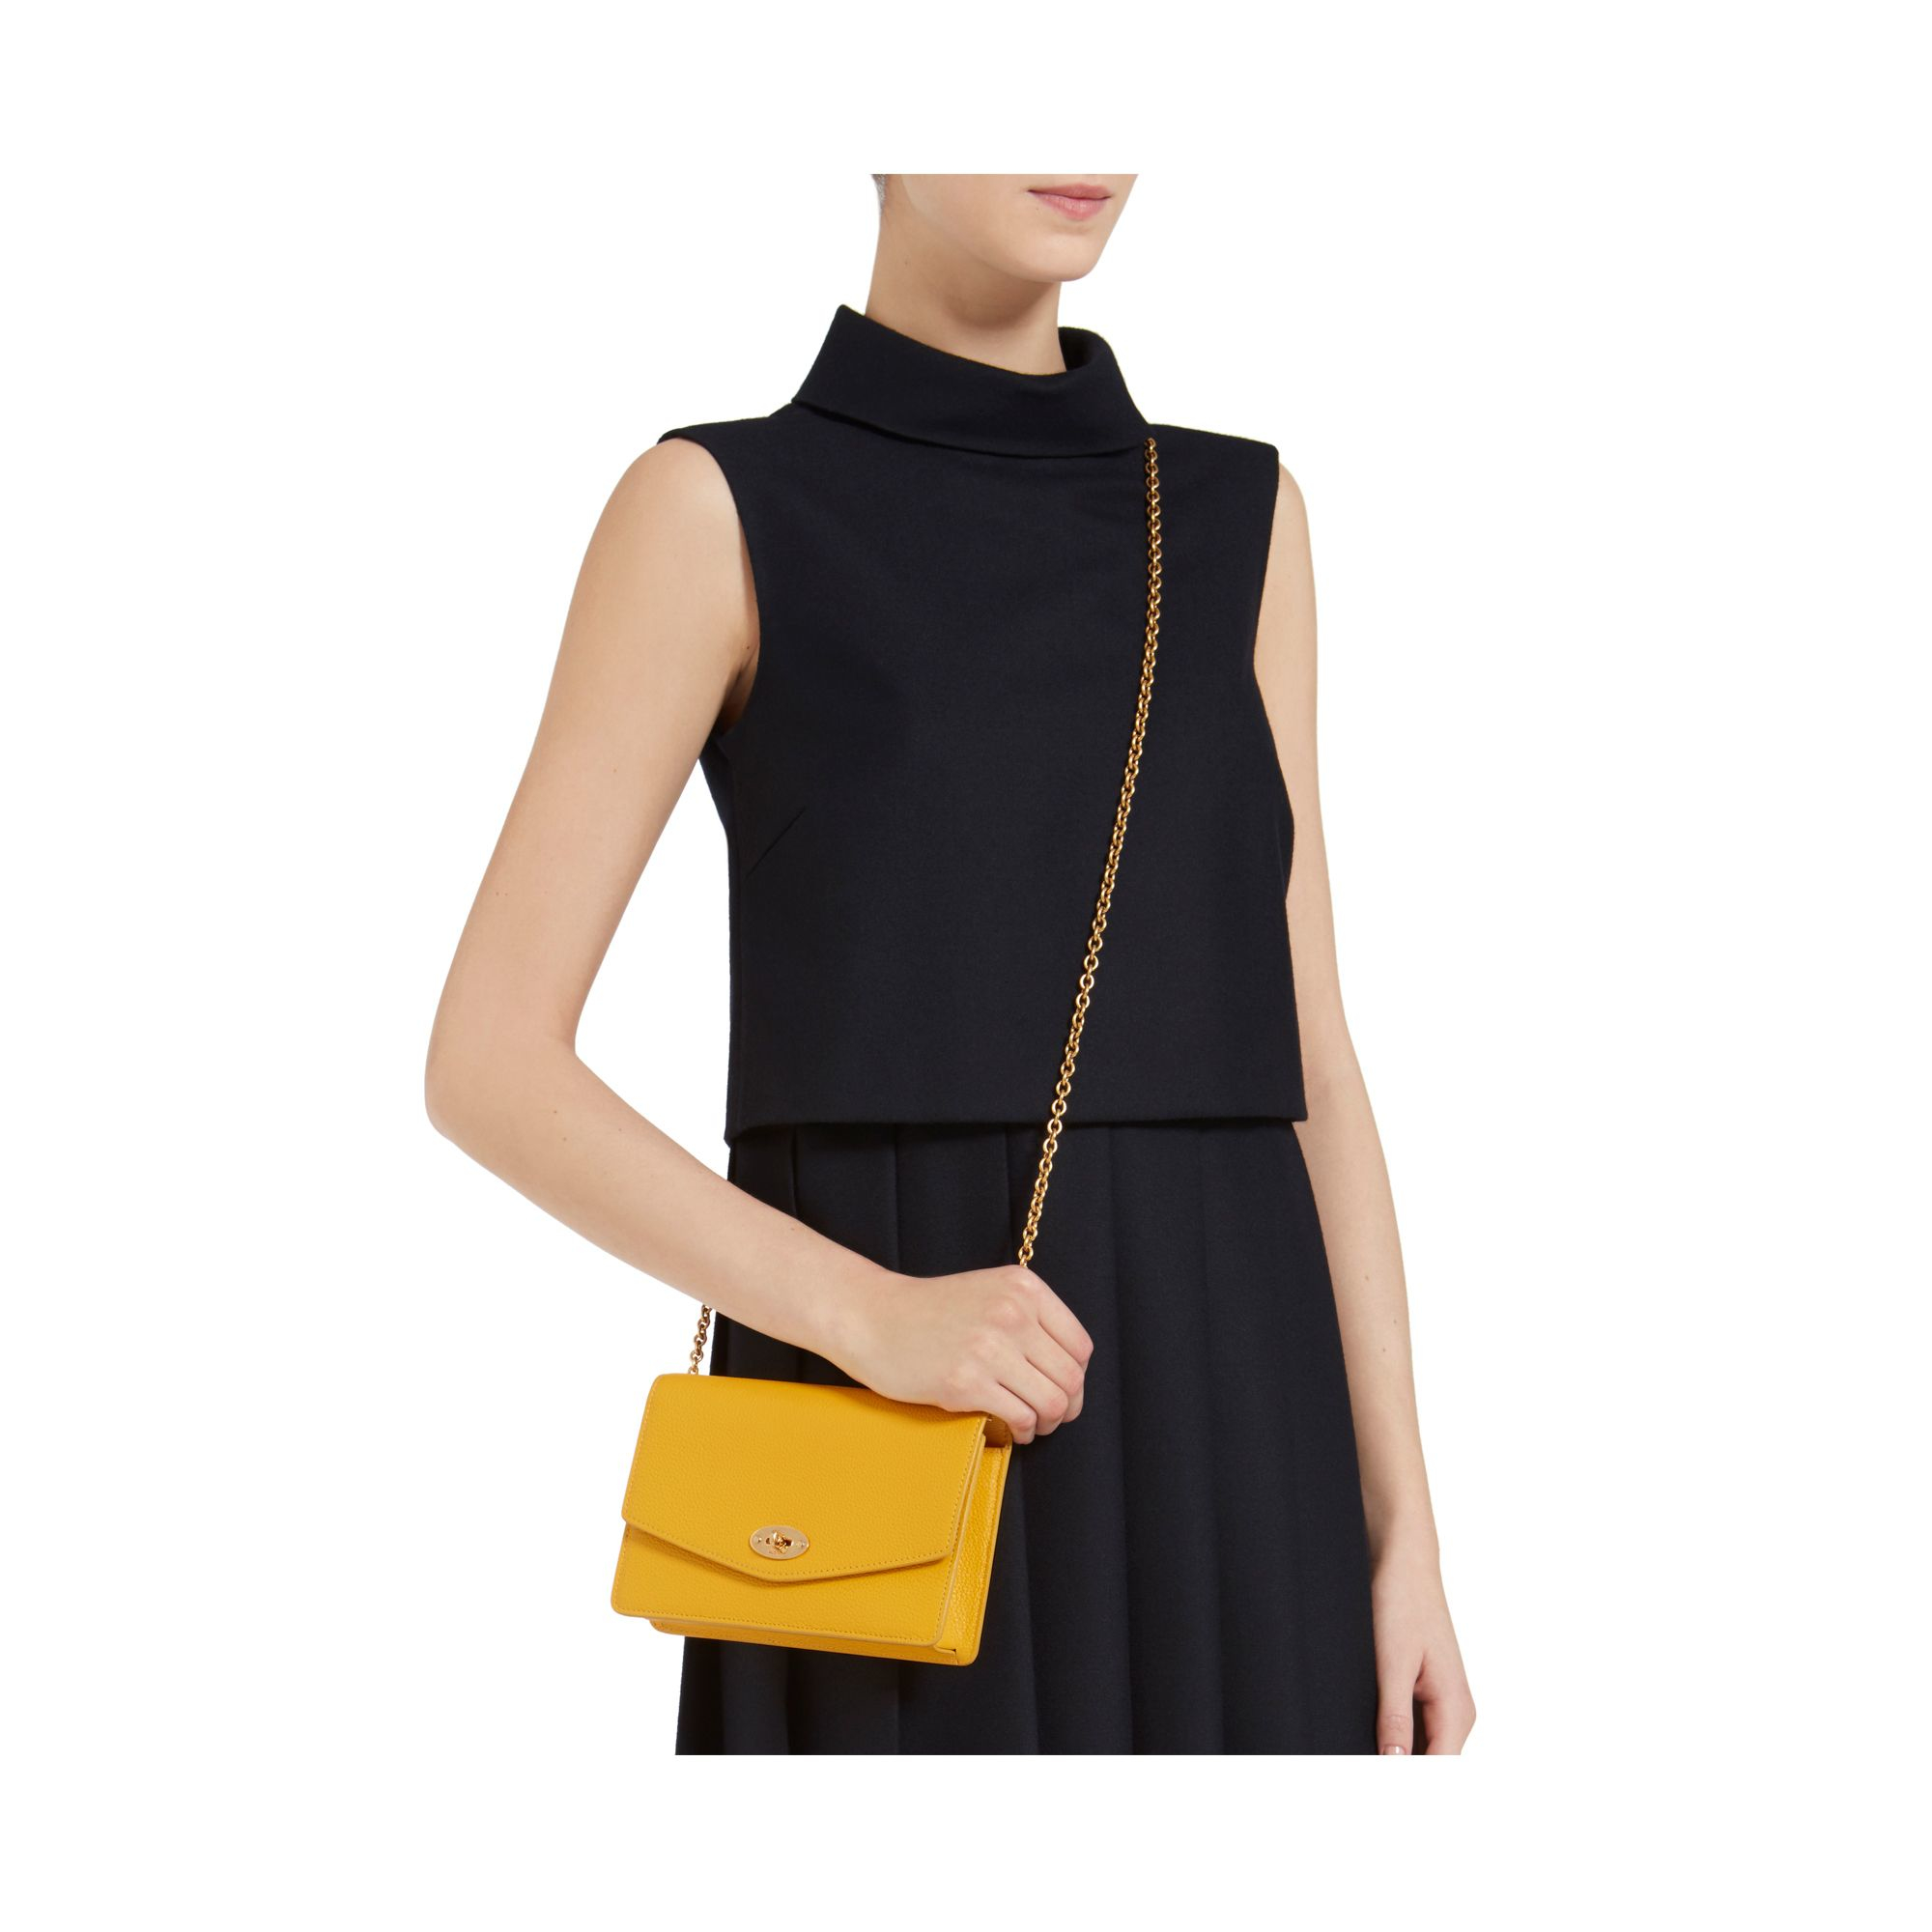 a75ec68a3025 Mulberry Small Darley in Yellow - Lyst